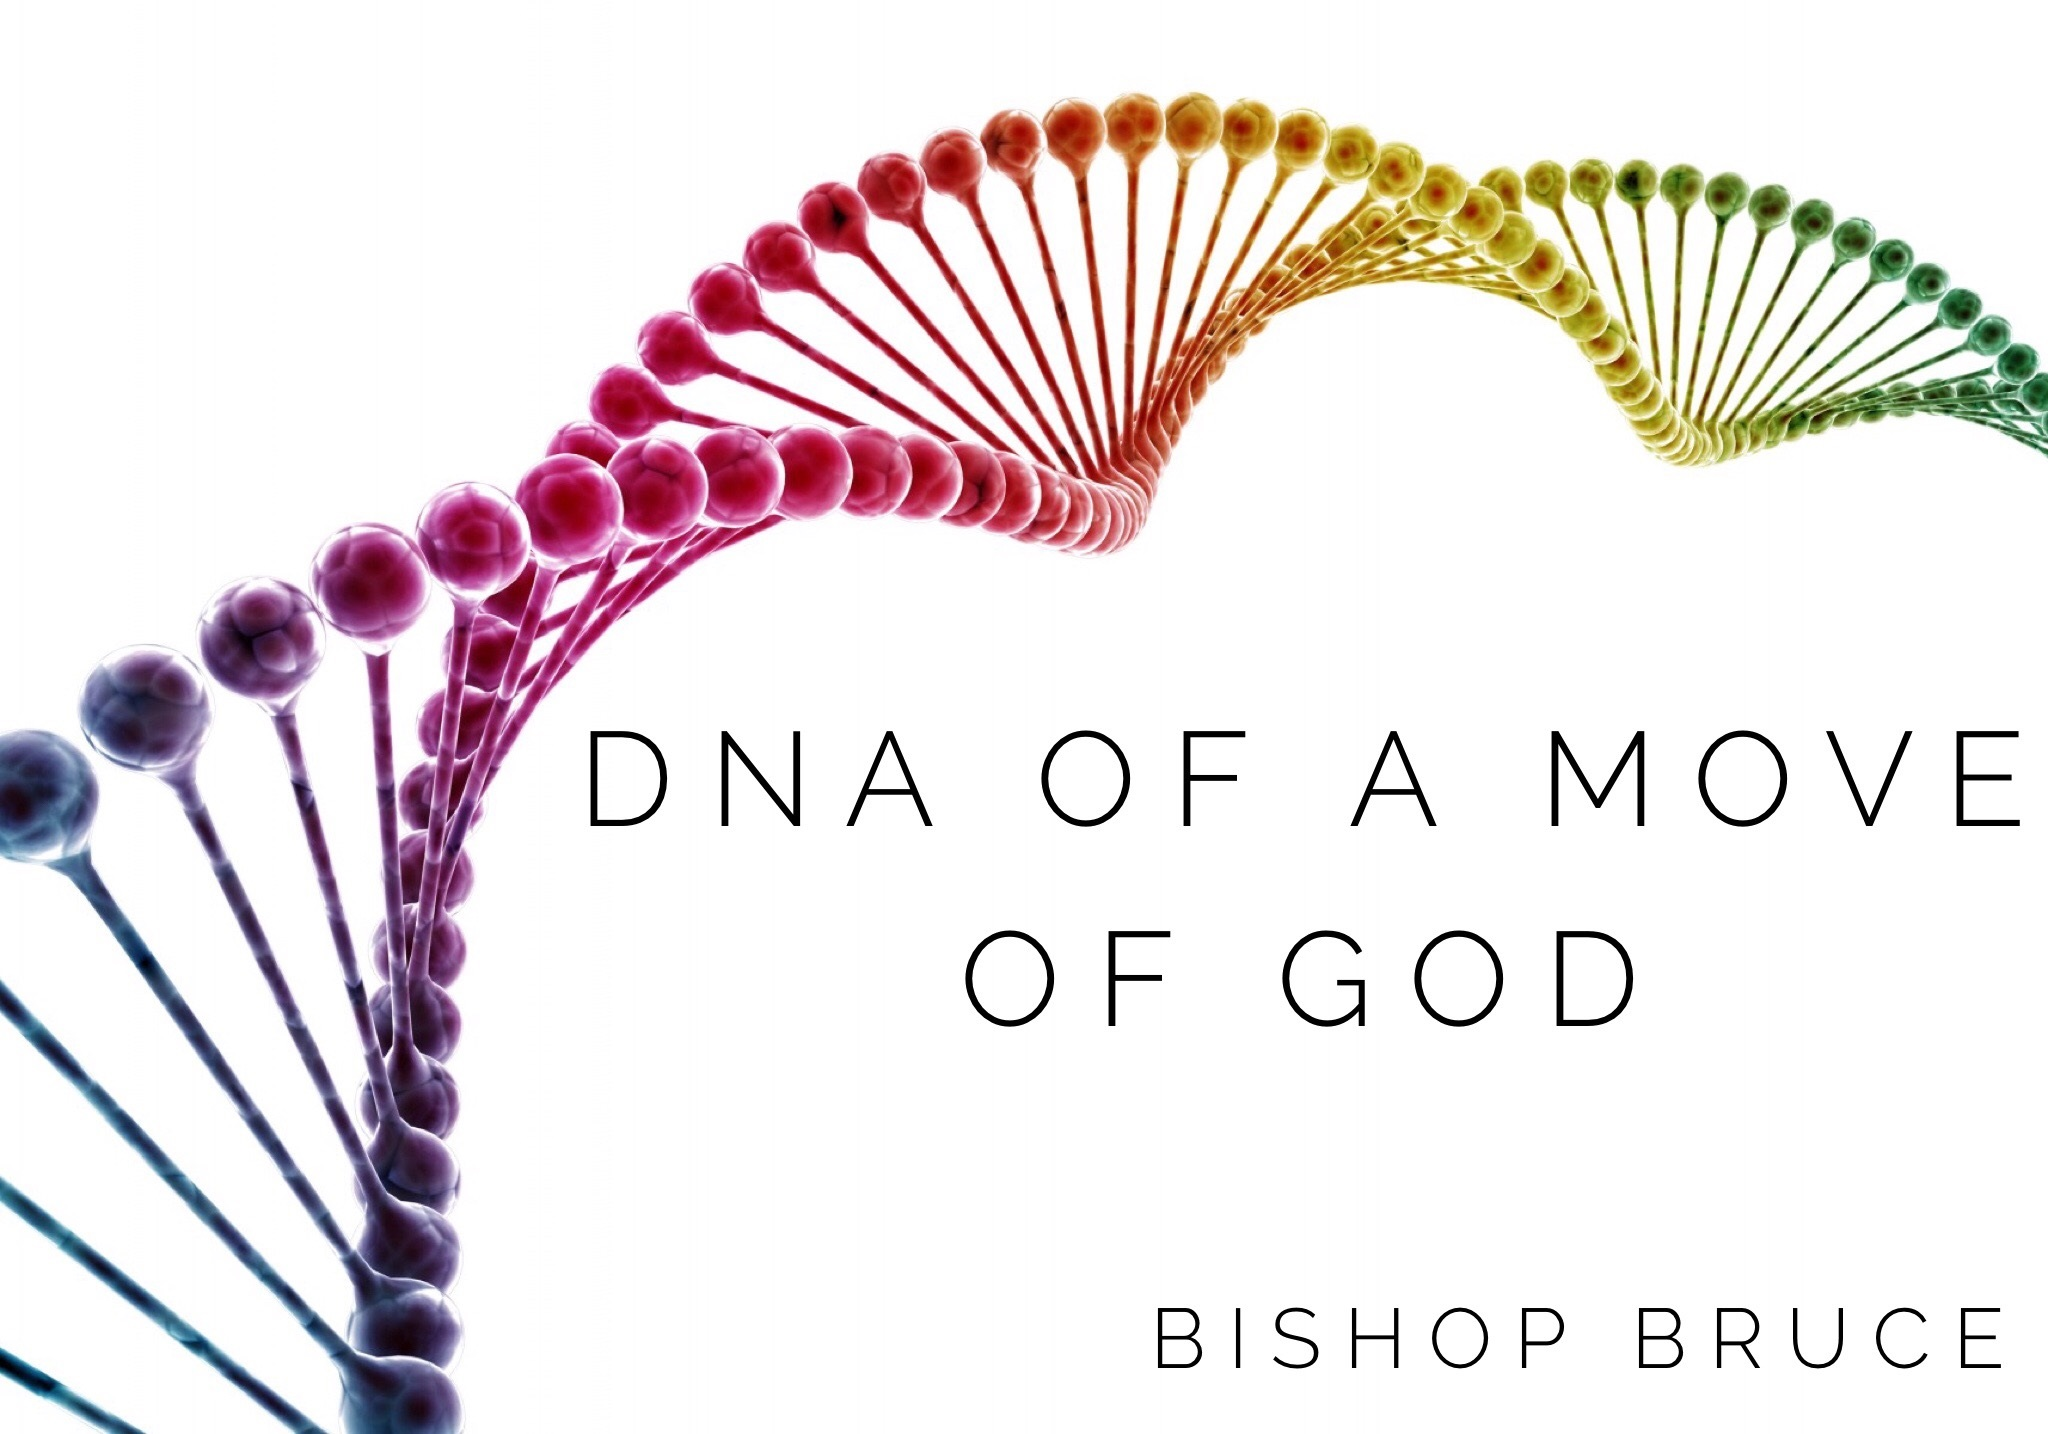 The DNA of a Move of God